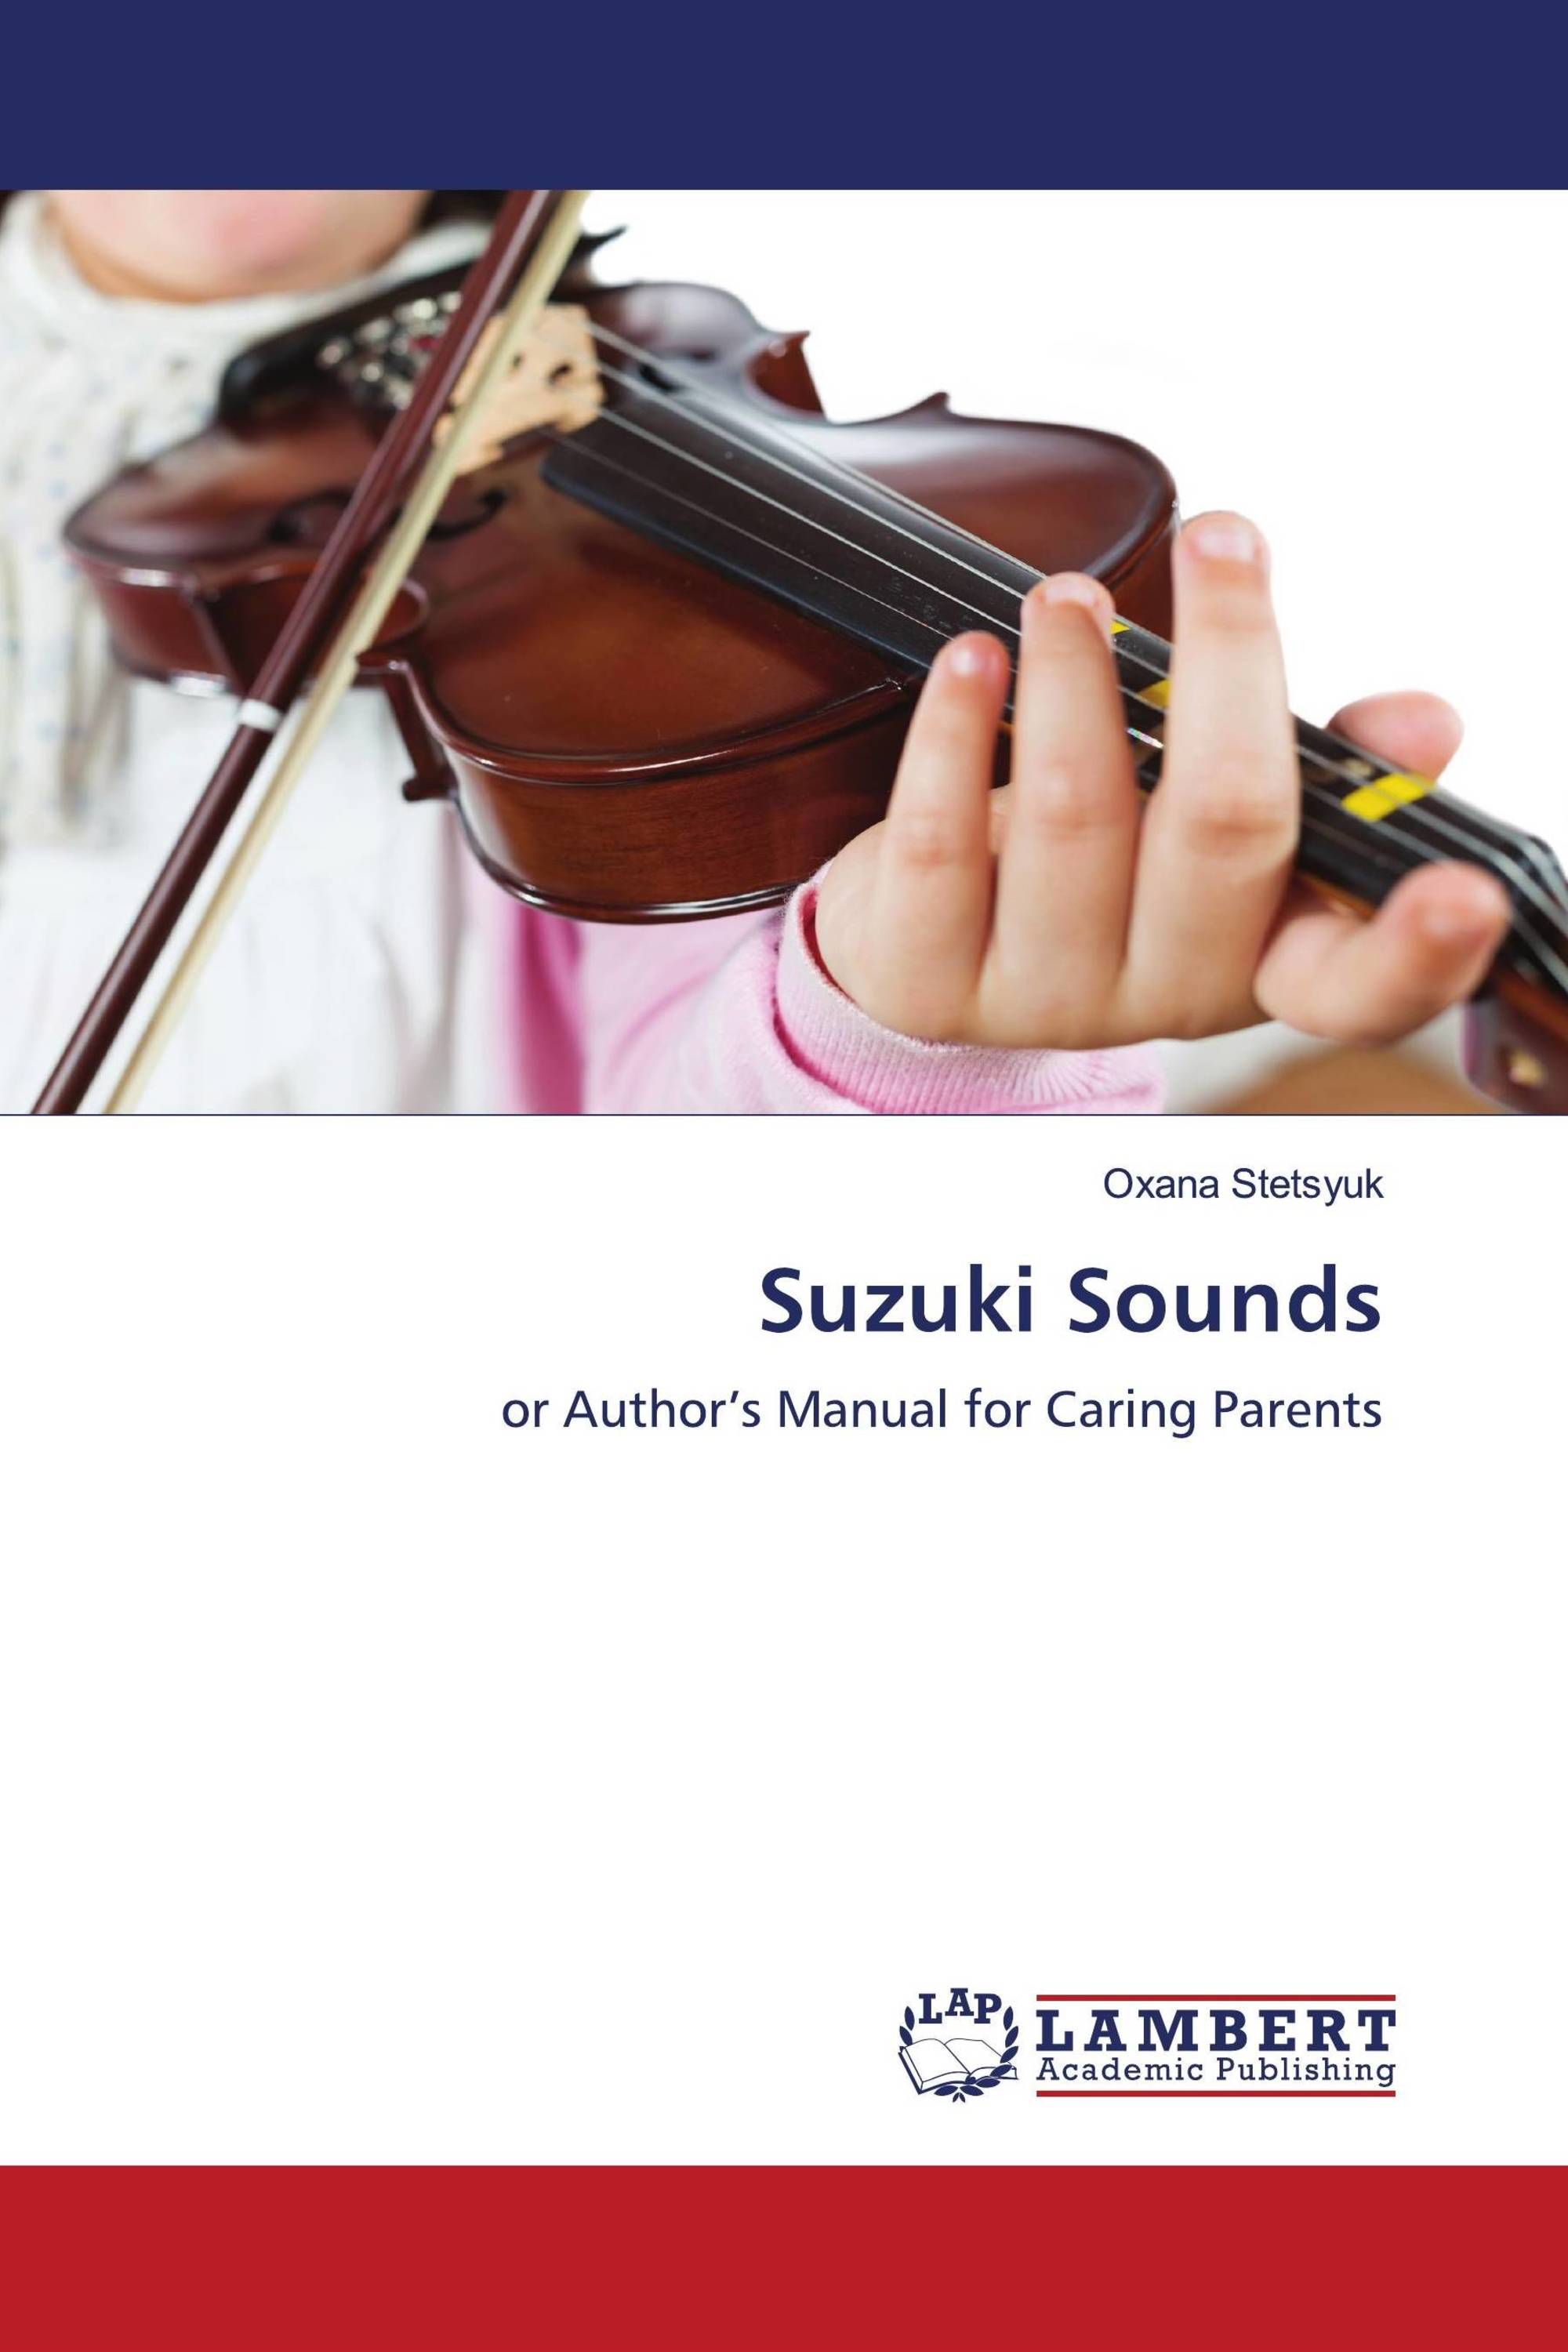 Suzuki Sounds